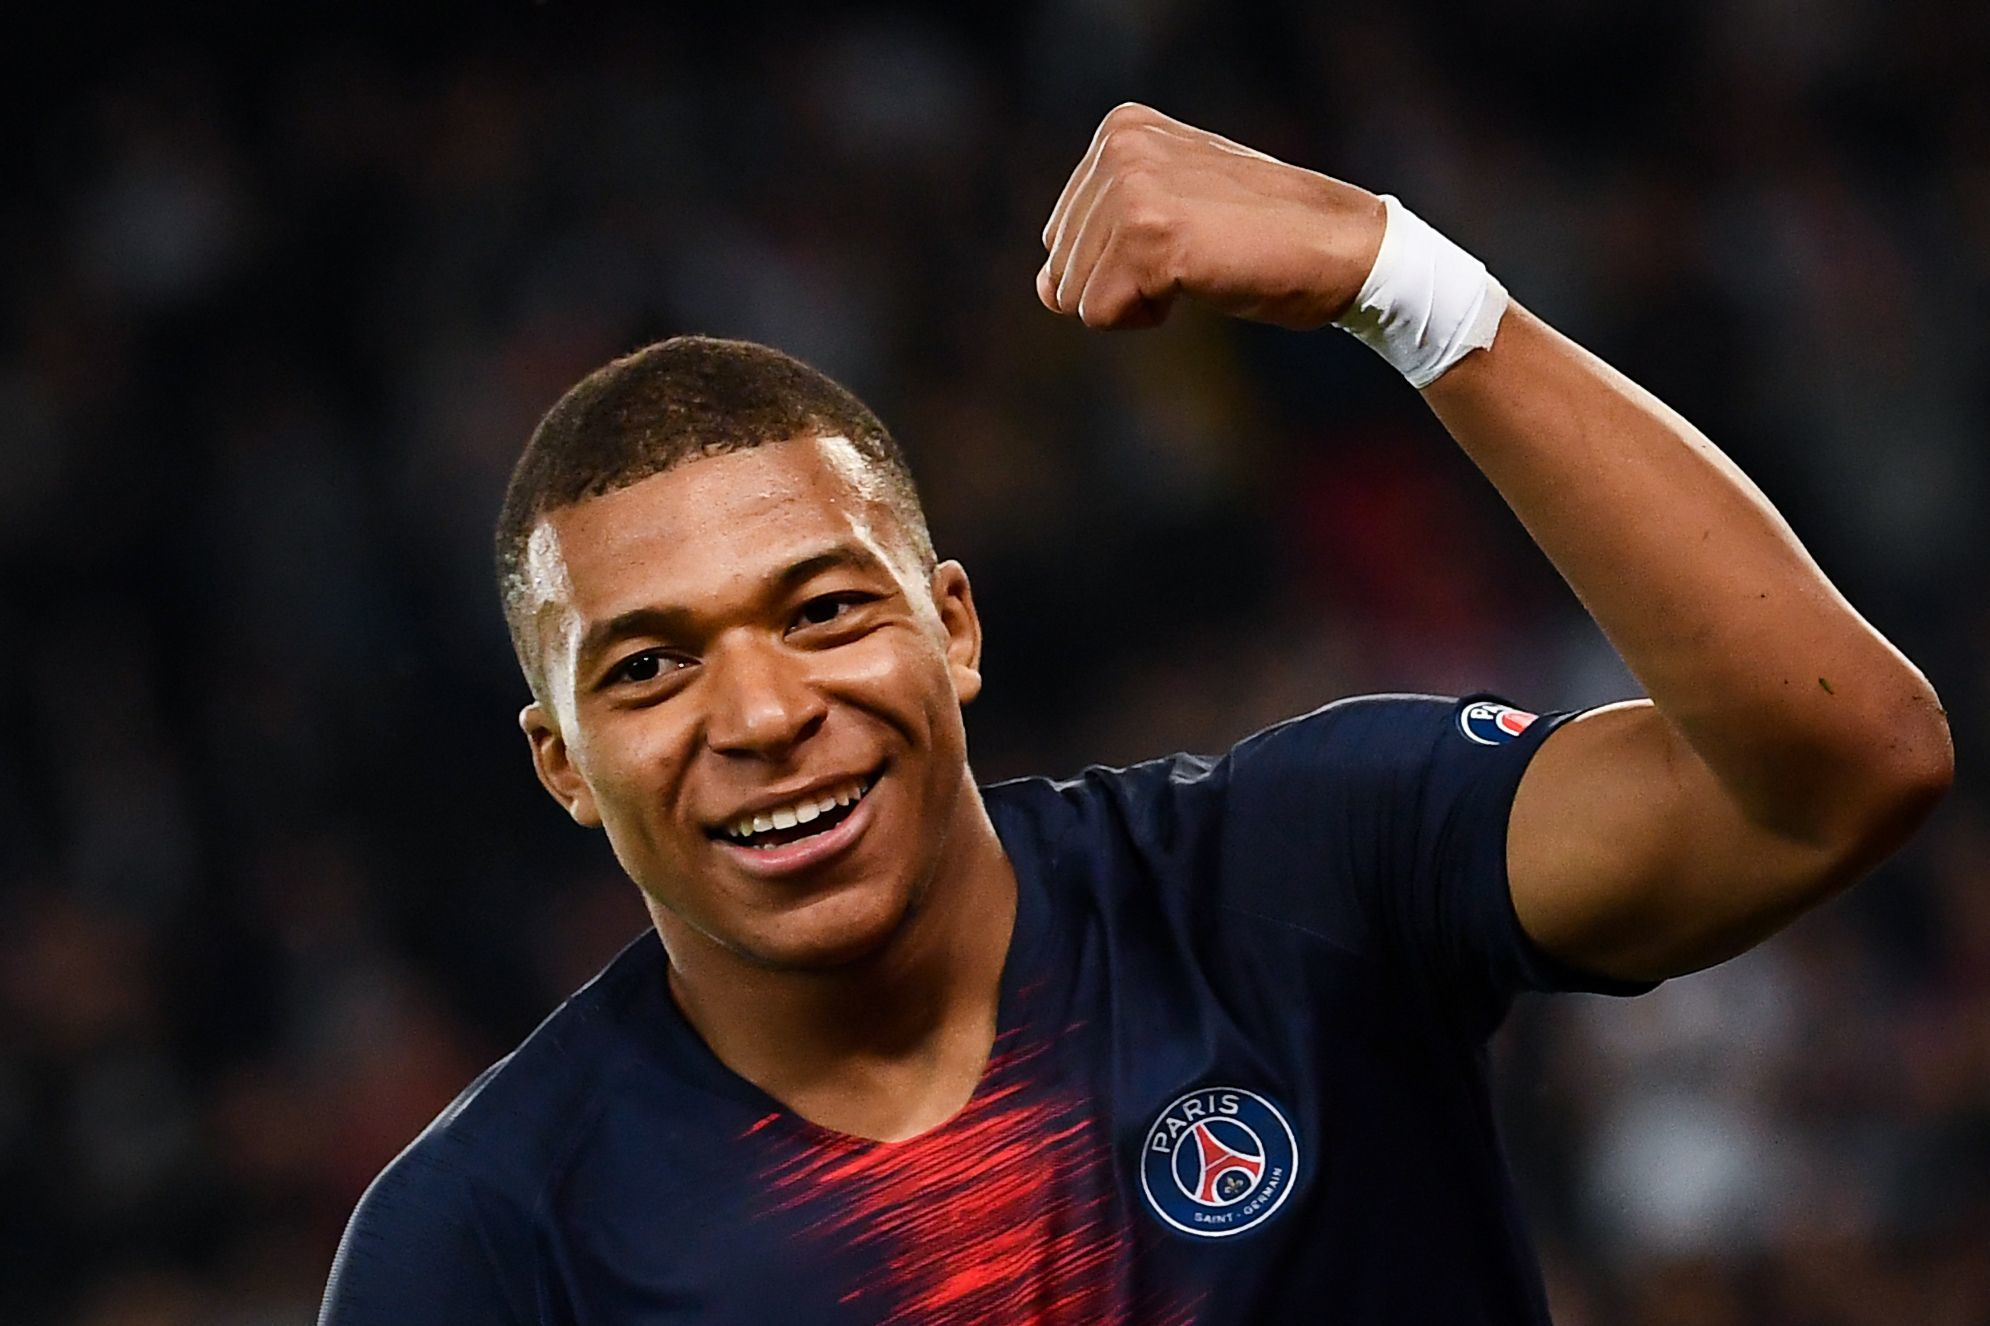 Paris Saint-Germains French forward Kylian <HIT>Mbappe</HIT> celebrates after scoring a goal during the French L1 football match between Paris Saint-Germain (PSG) and Monaco (ASM) on April 21, 2019 at the Parc des Princes stadium in Paris. (Photo by Anne-Christine POUJOULAT / AFP)